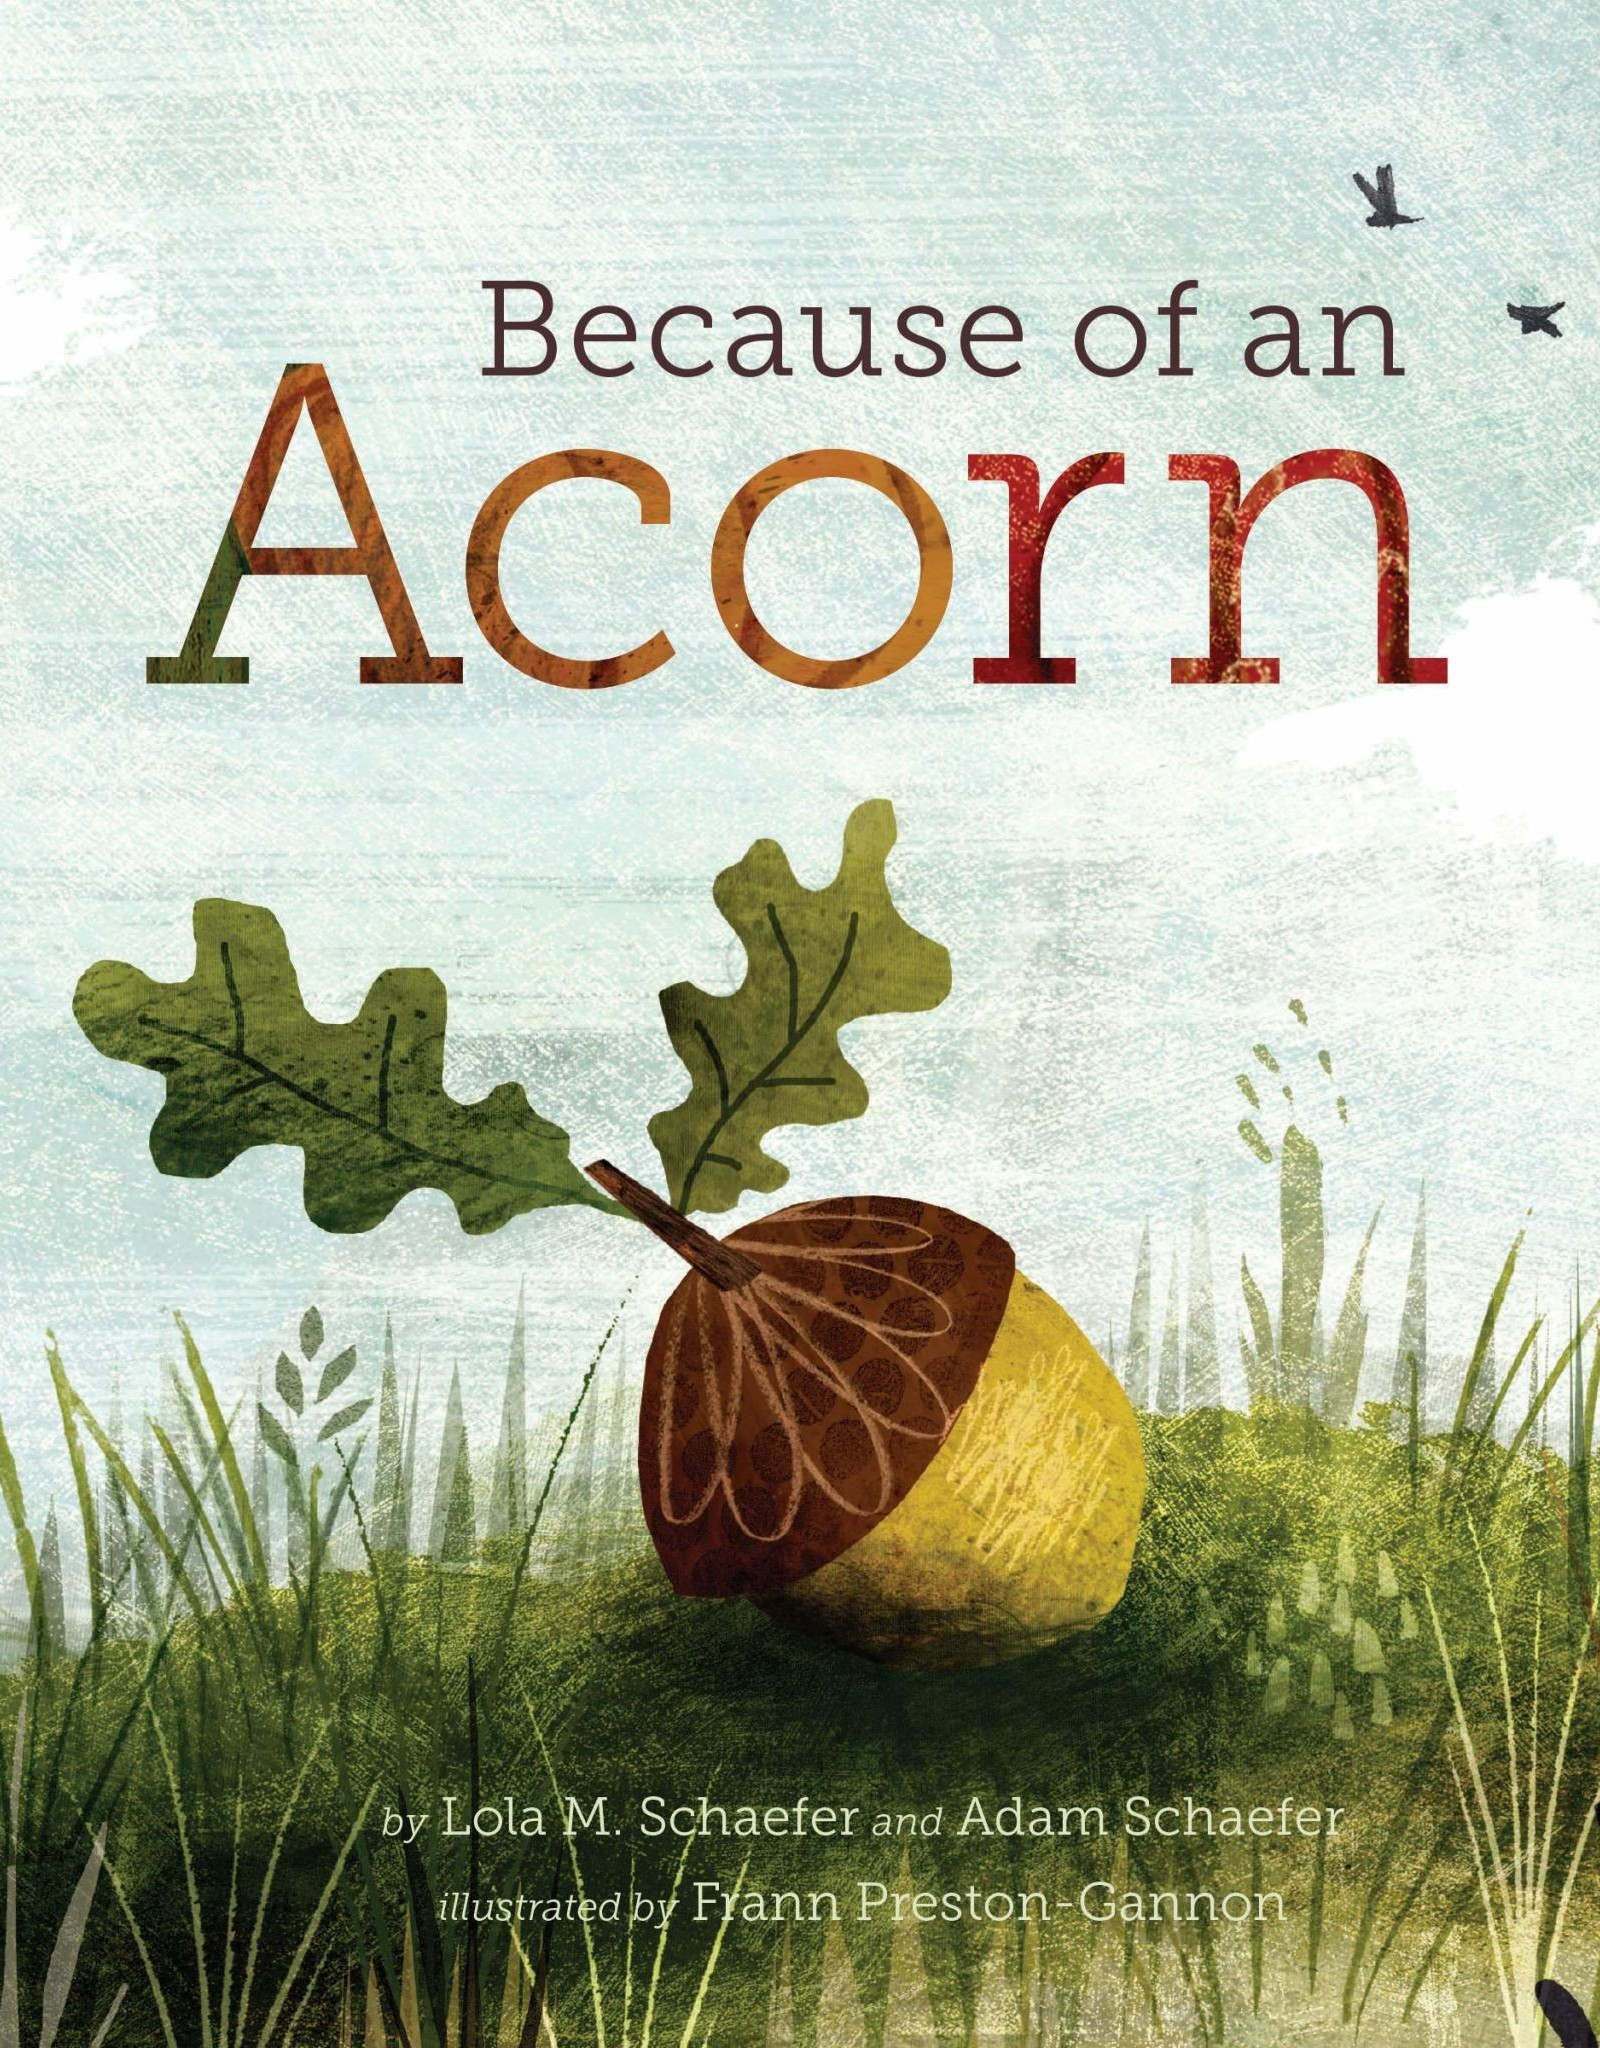 Because of an Acorn